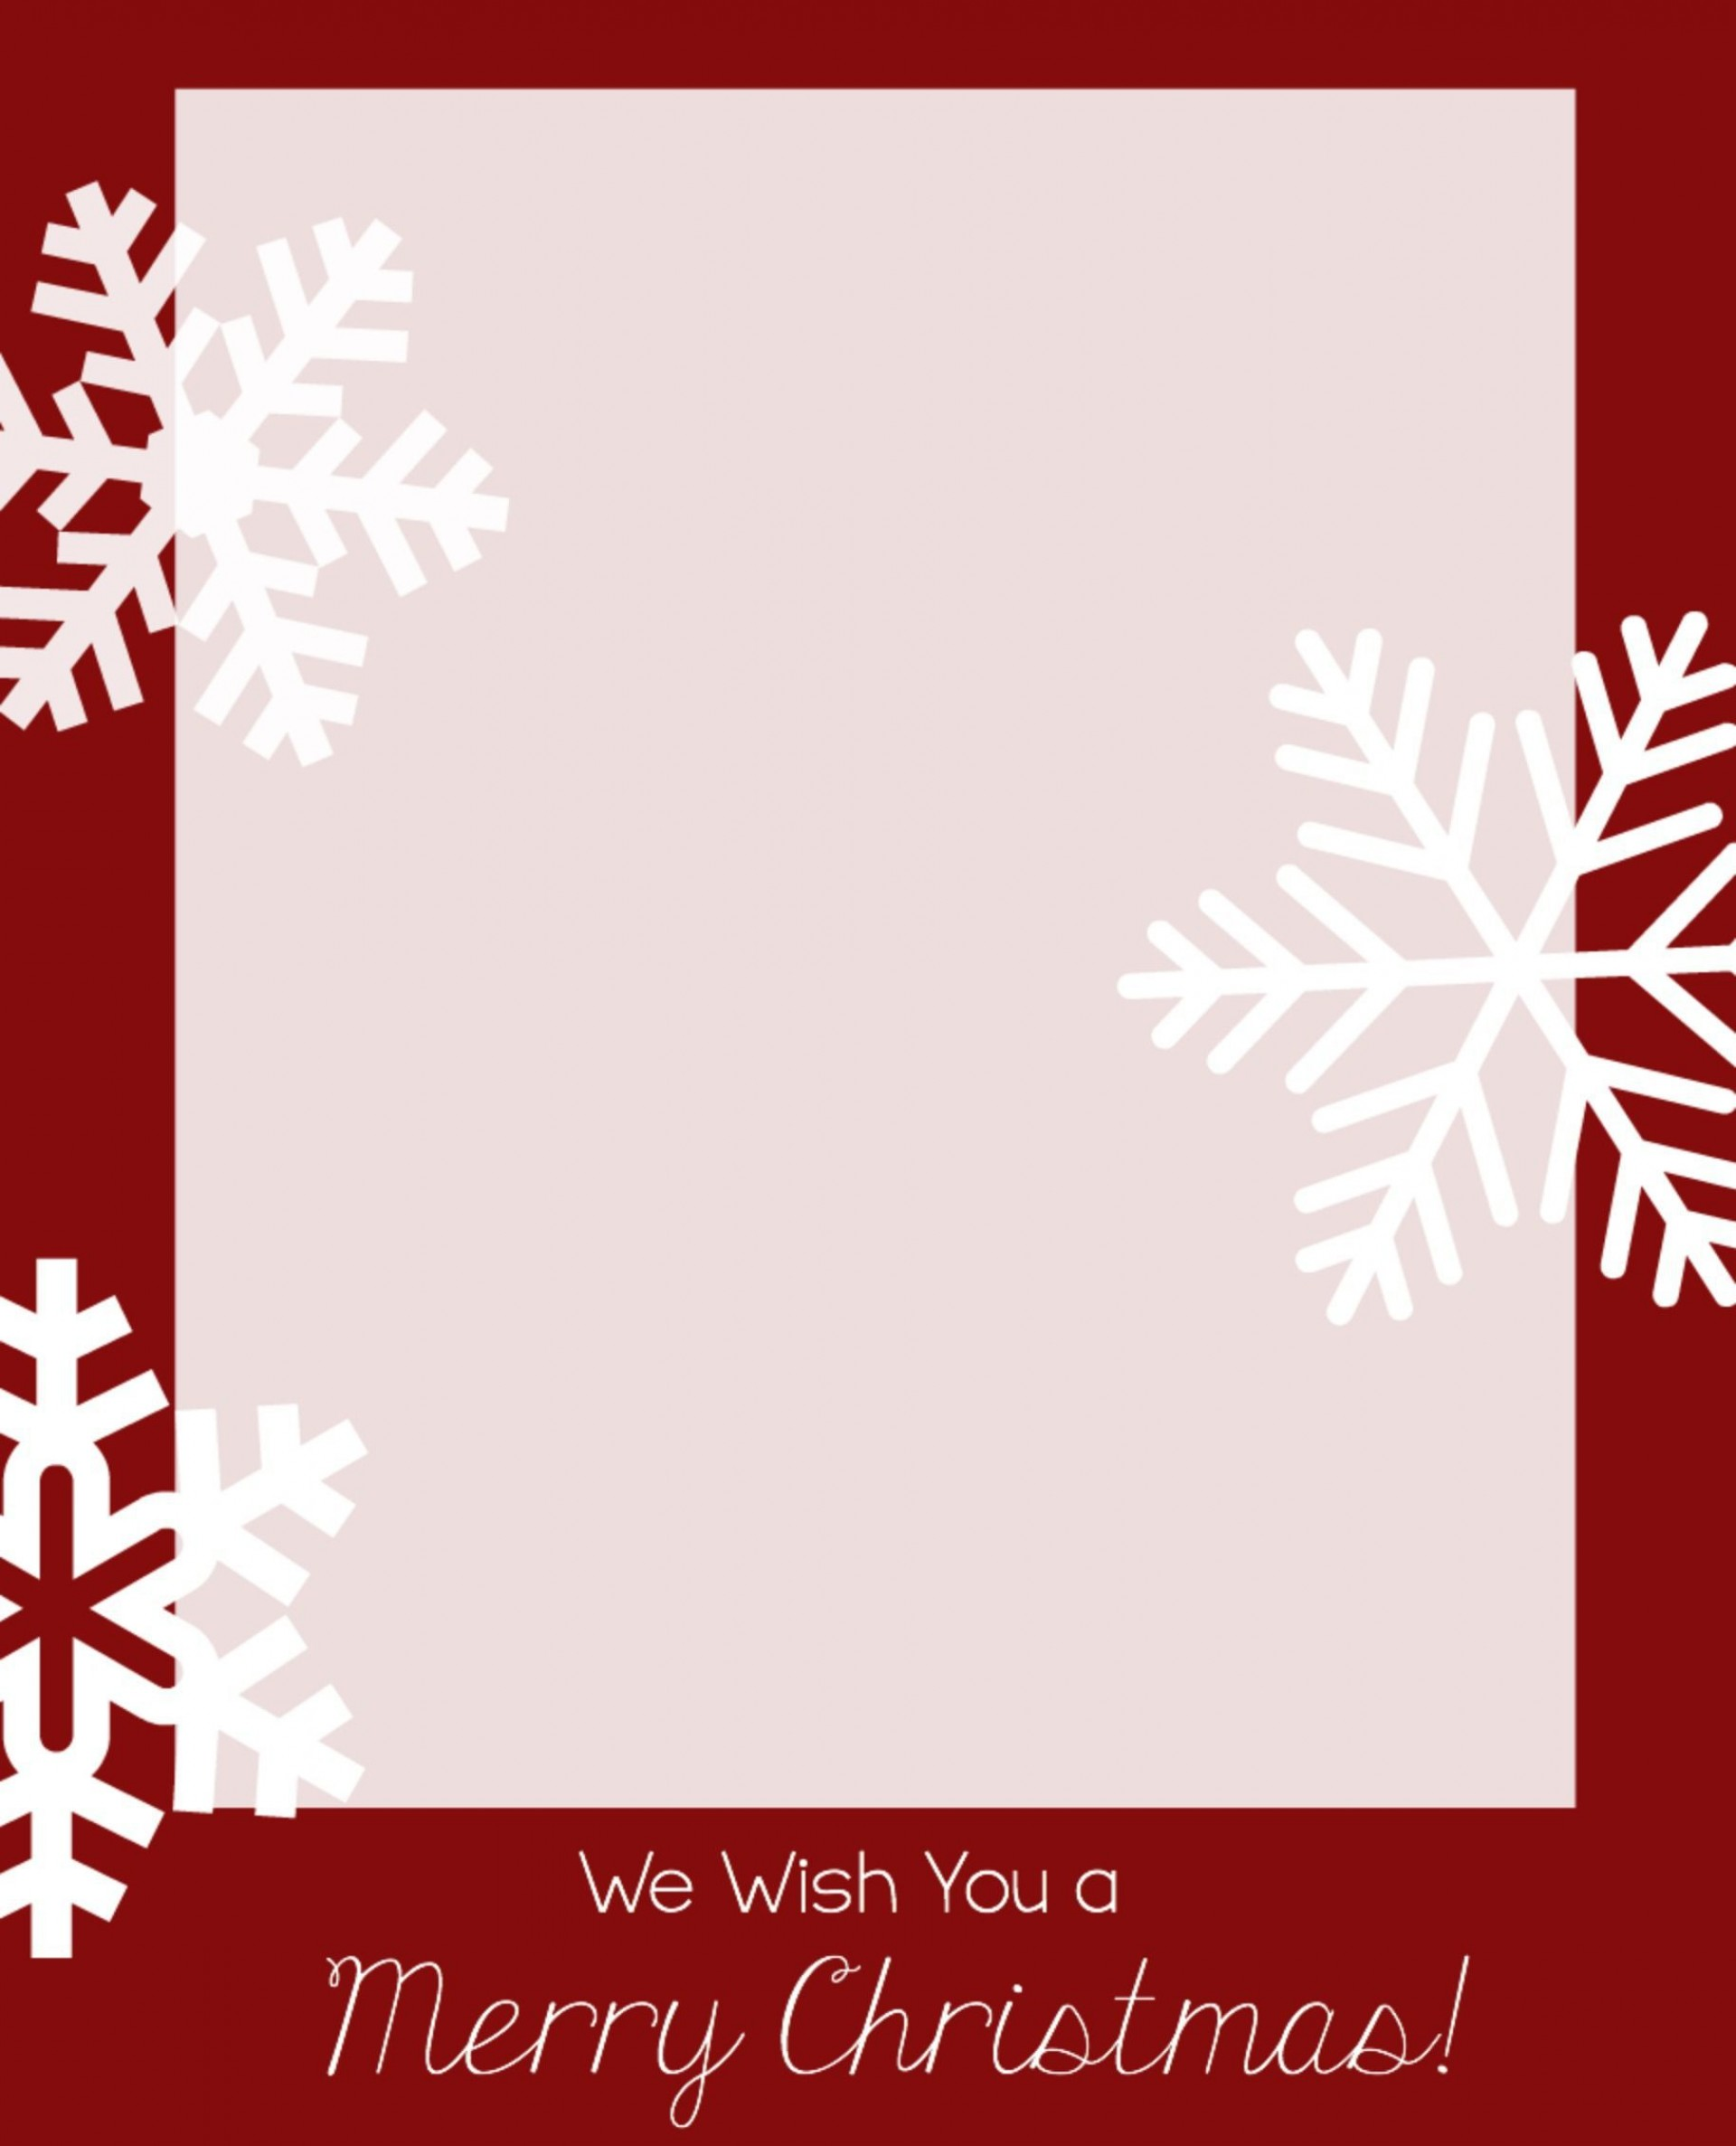 004 Unique Free Download Holiday Card Template Photo 1920